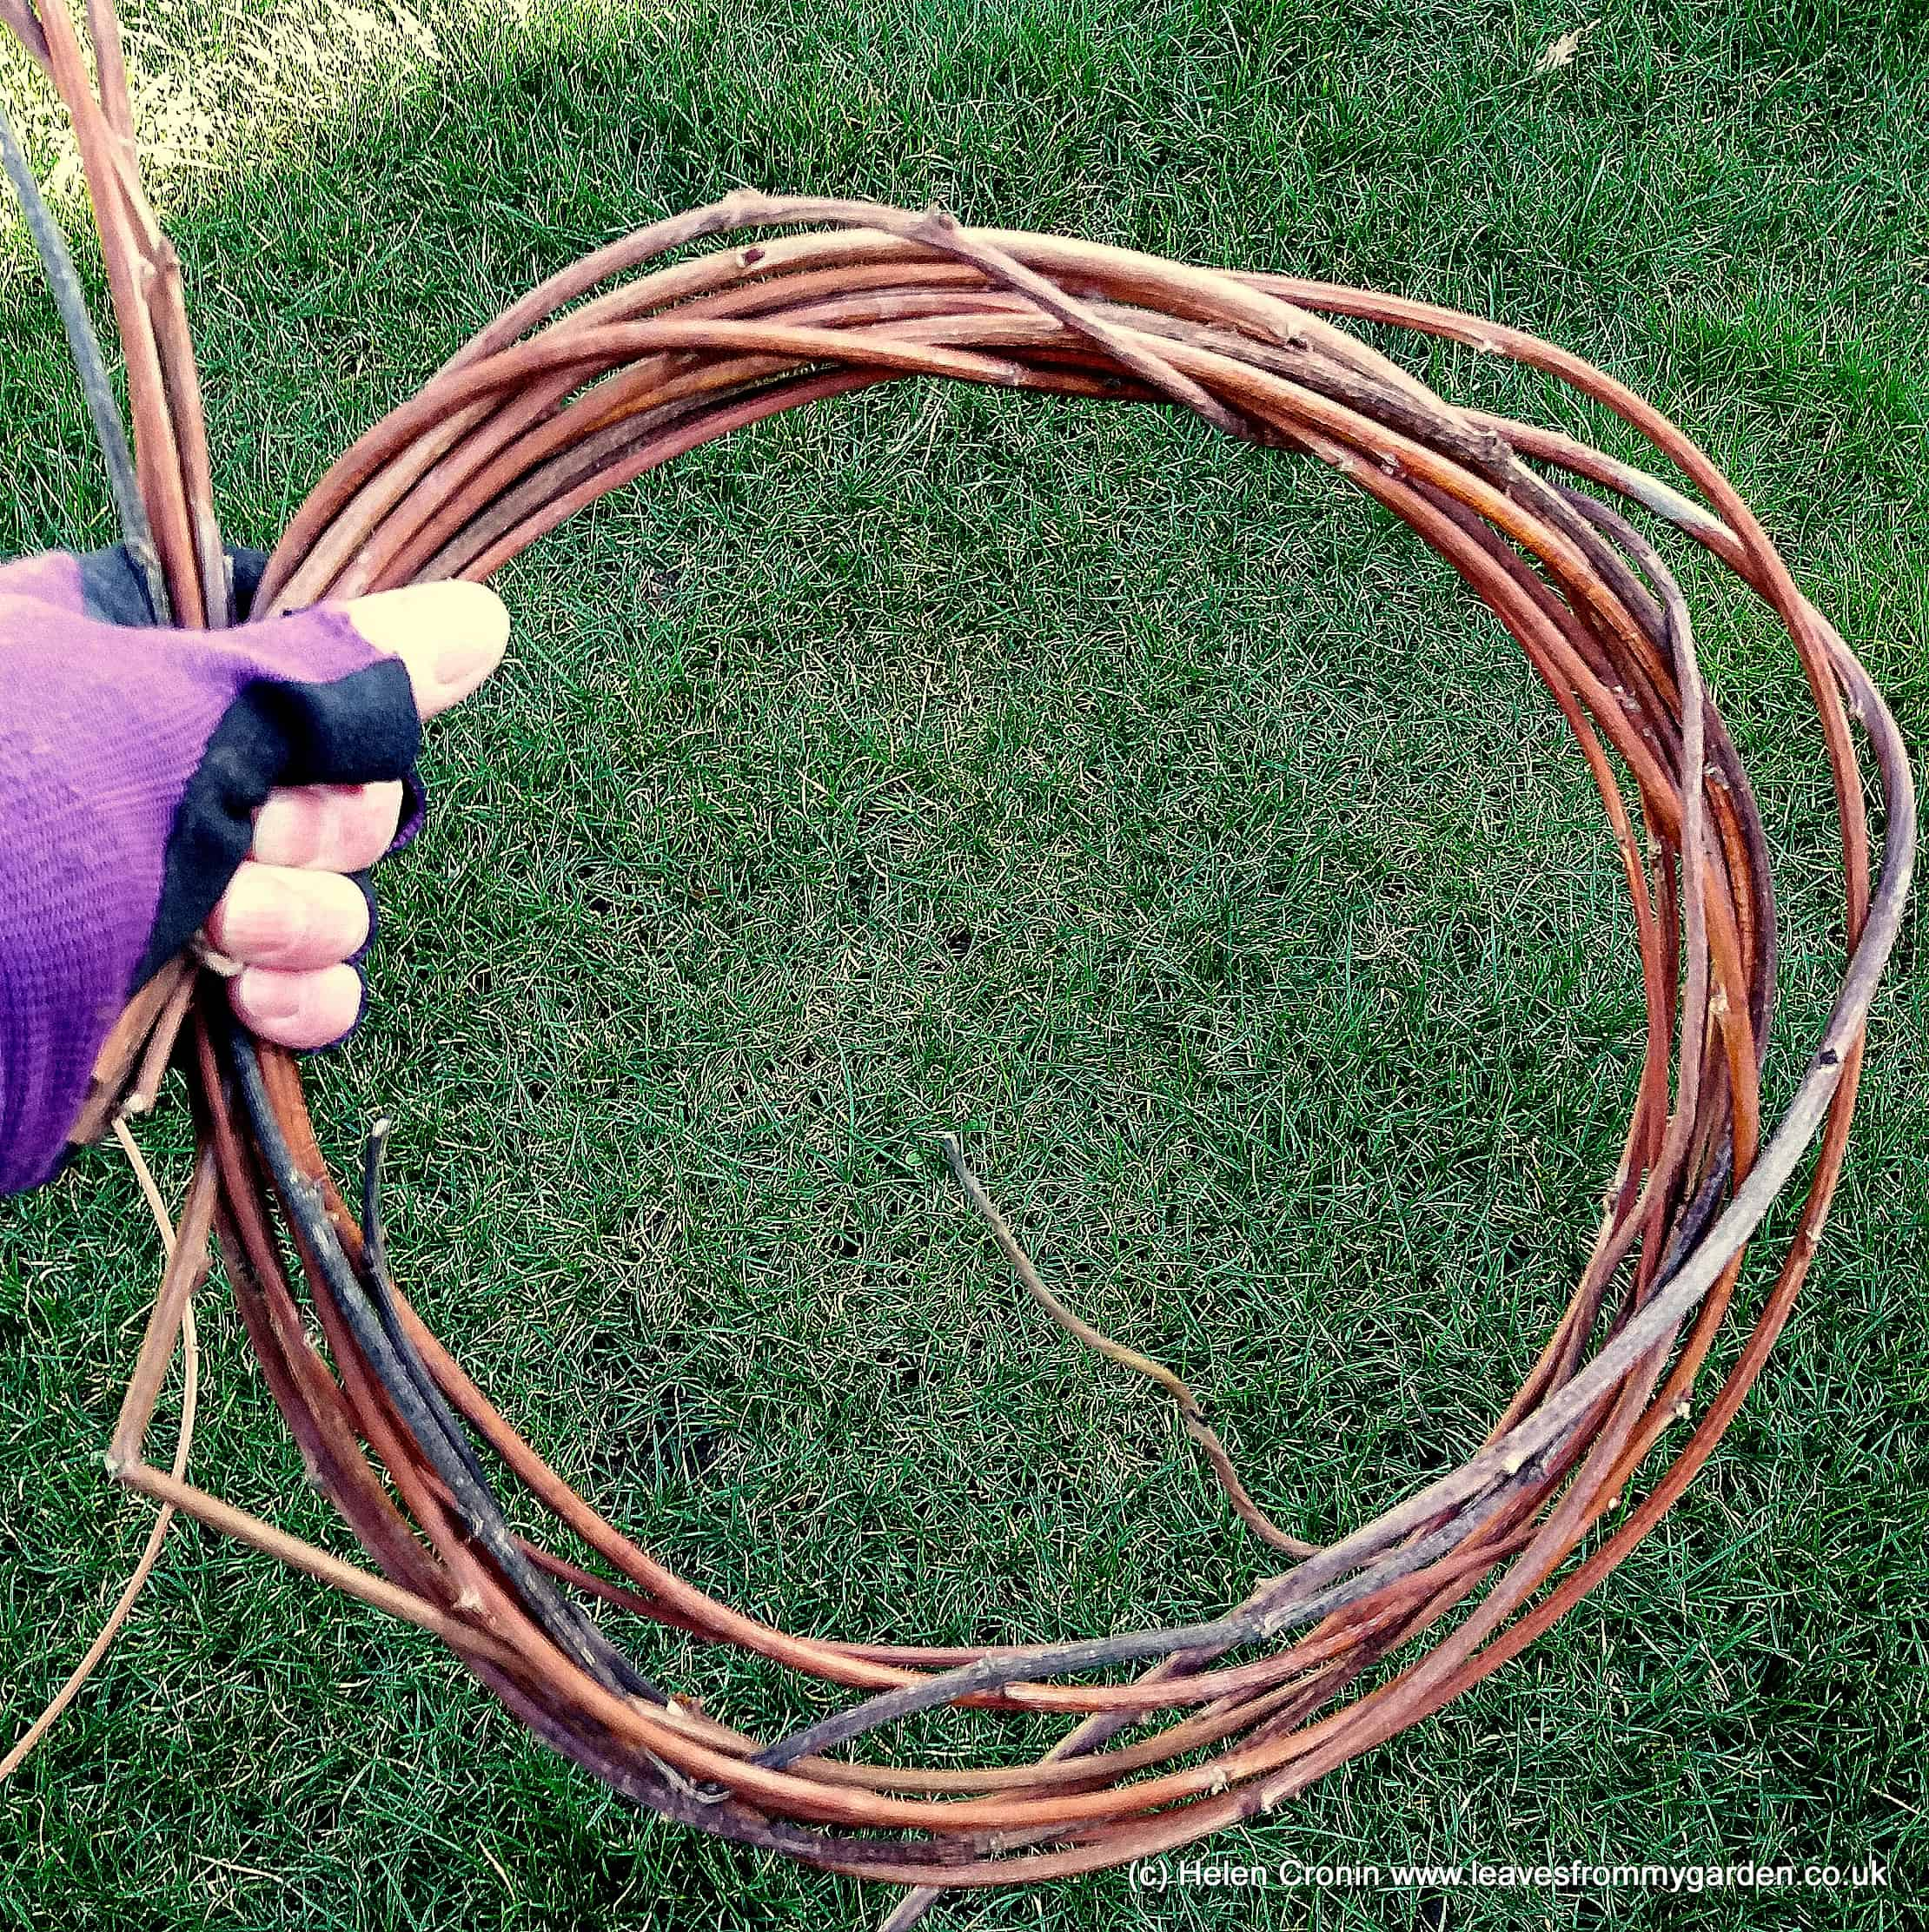 Gently bend the stems round to start forming the desired shape and tie the end in with more twine